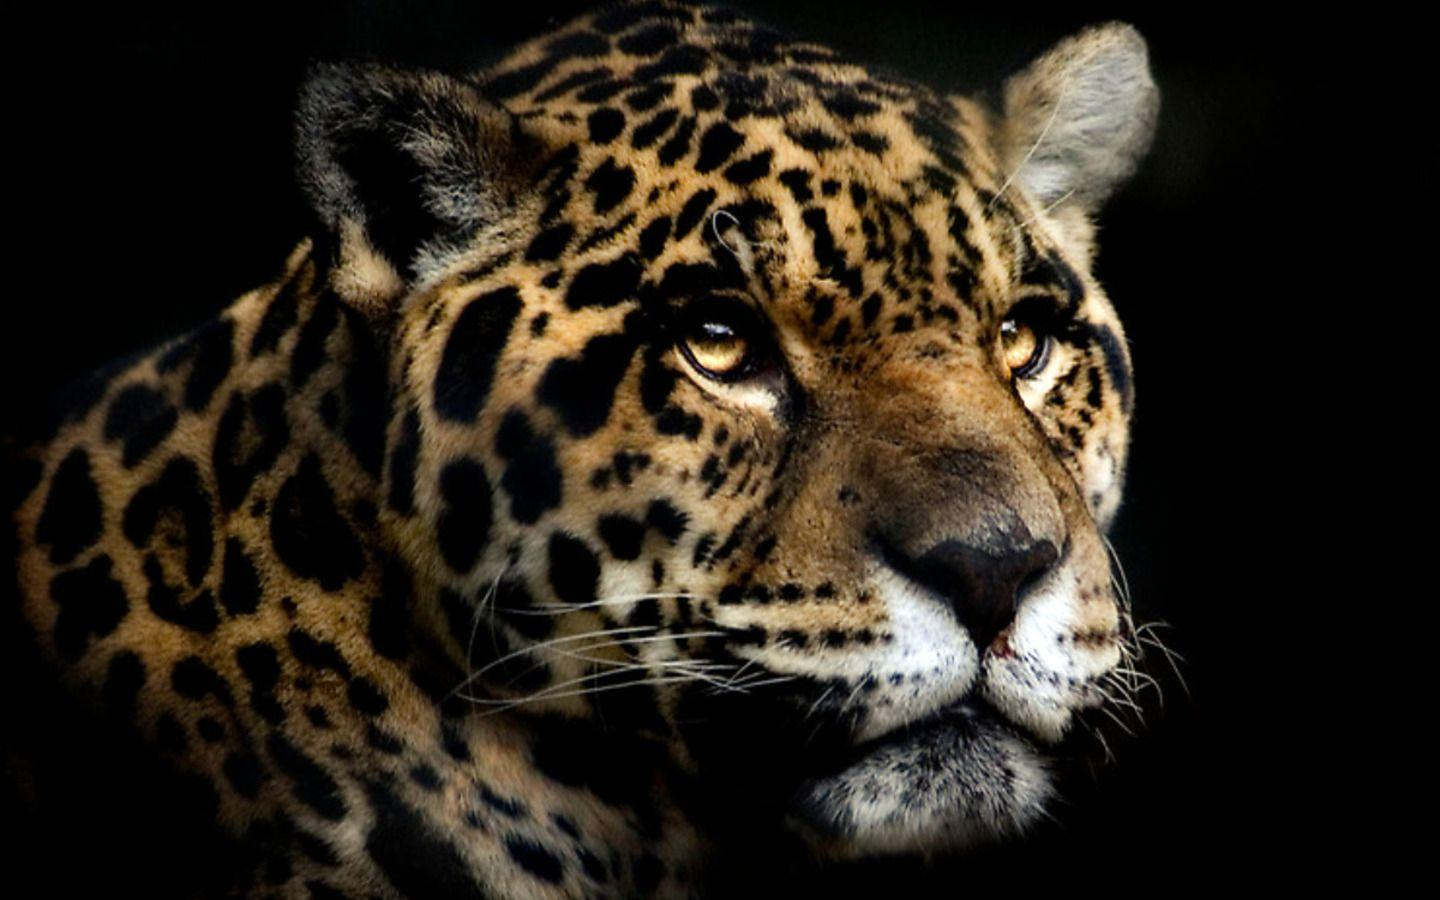 Fonditos jaguar bebe animales jaguares mascotas felinos - Jaguar animal hd wallpapers ...